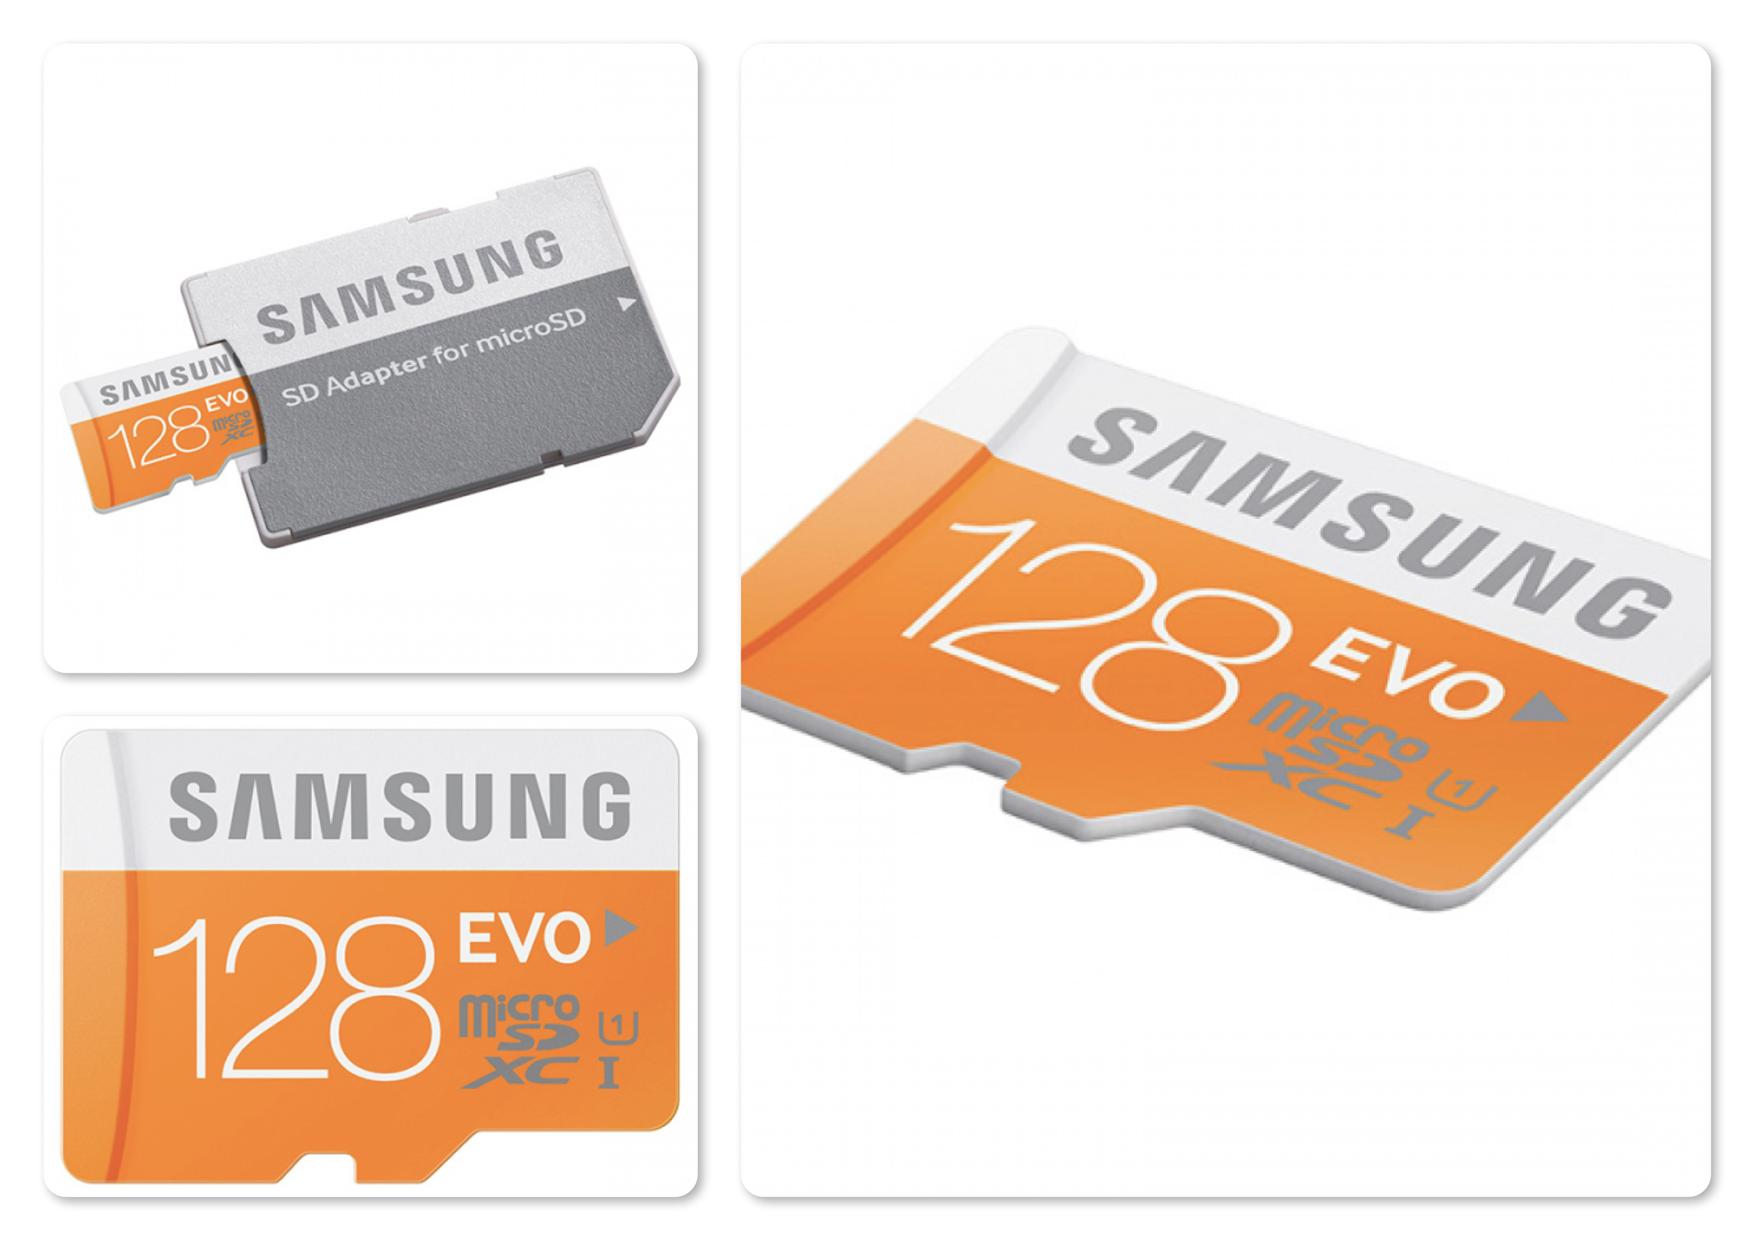 Samsung 128GB Micro SDXC Class 10 EVO Memory Card with Adaptor